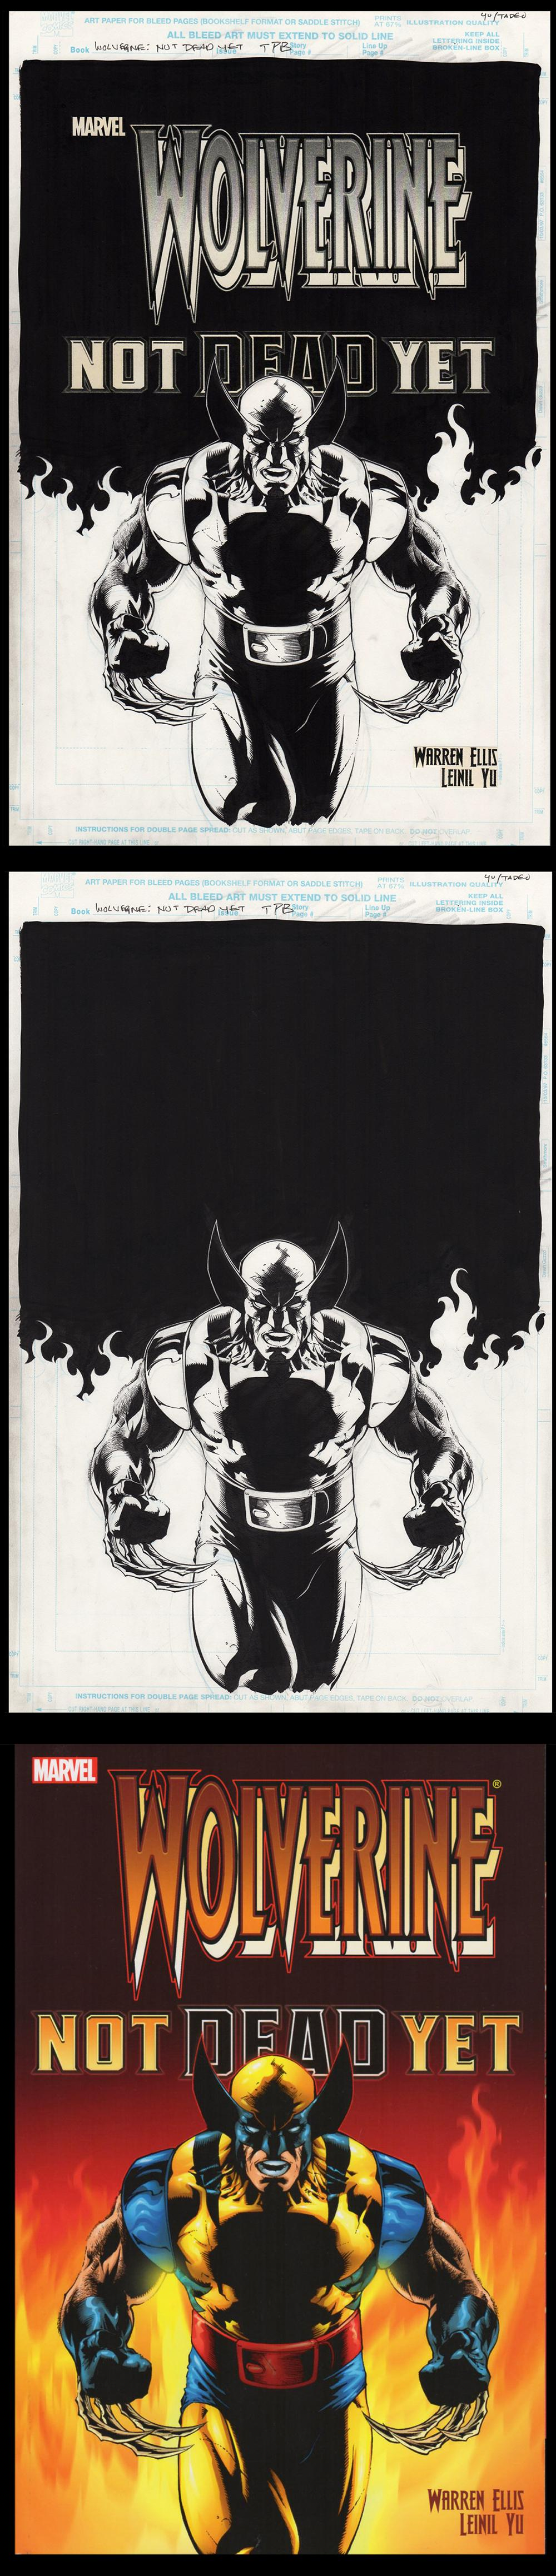 Image: Wolverine Not Dead Yet TPB Cover art by Leinil Yu